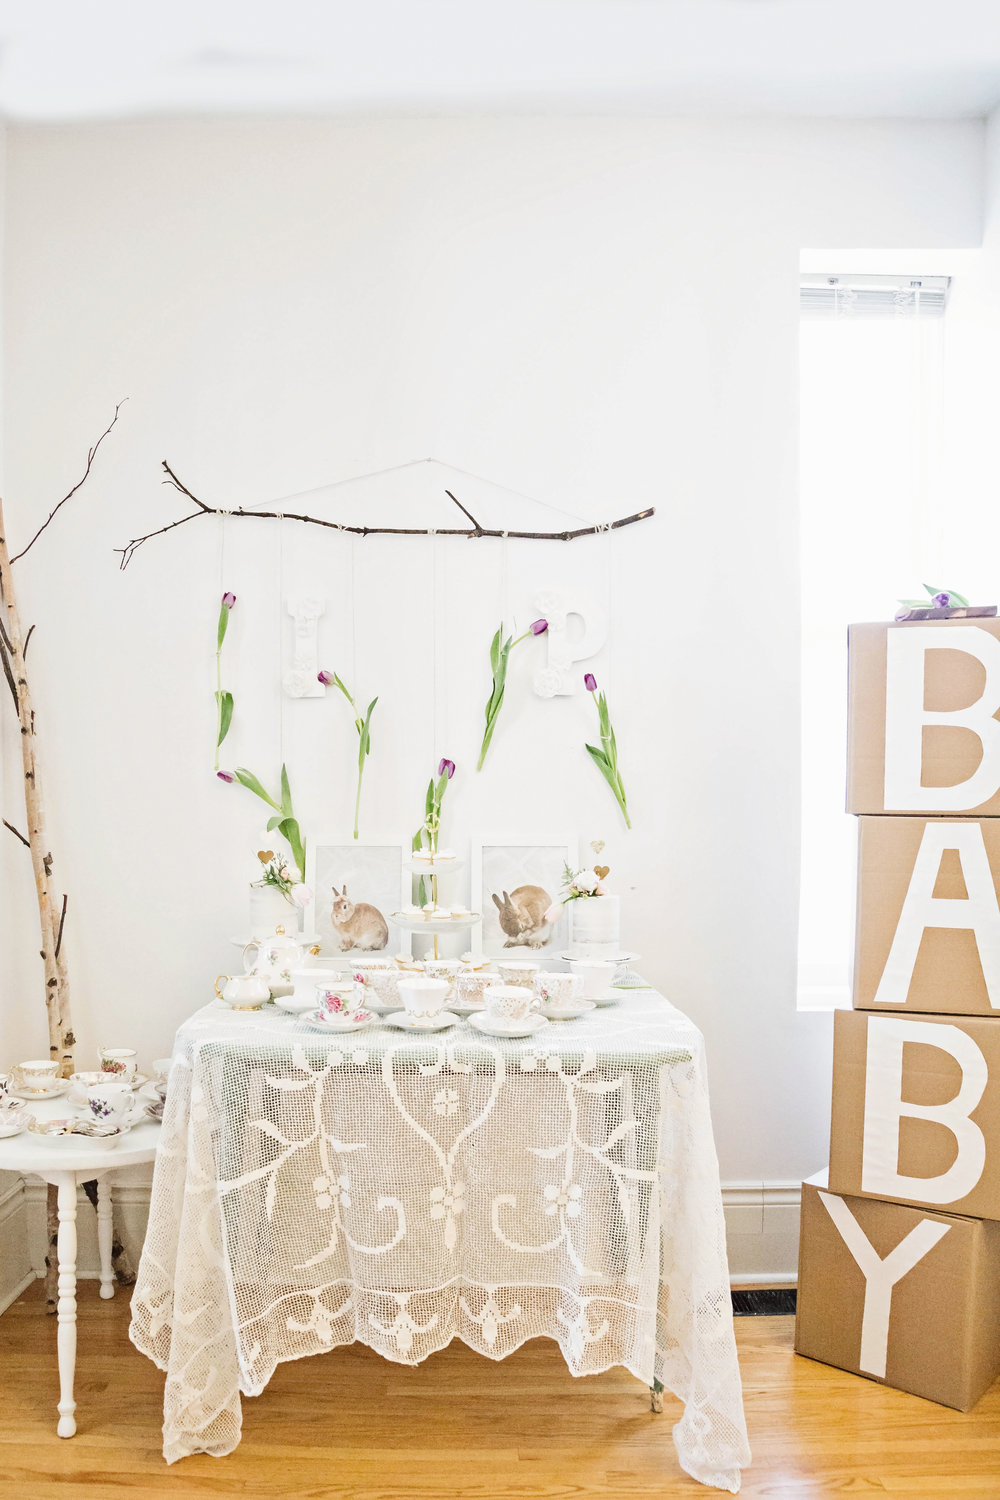 toronto-branding-photographer-baby-shower-ideas-15.jpg